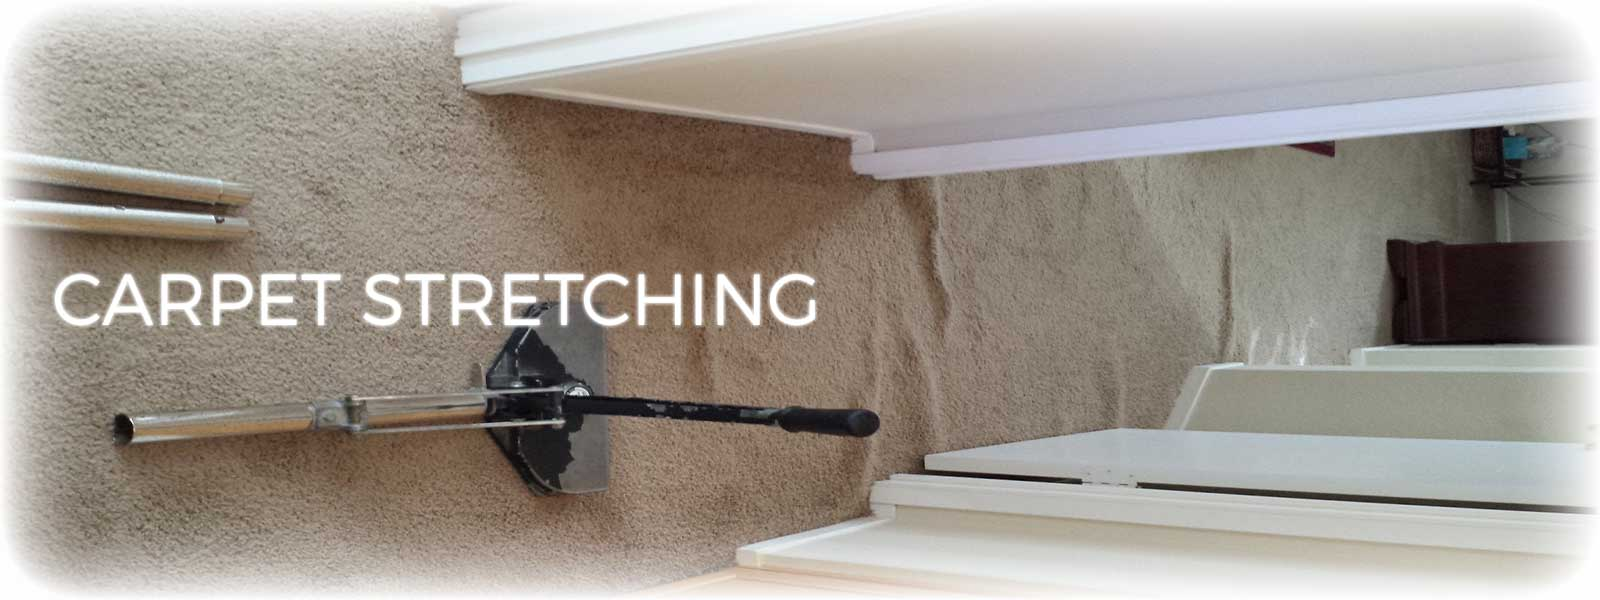 lets-talk-about-carpet-stretching-and-repair